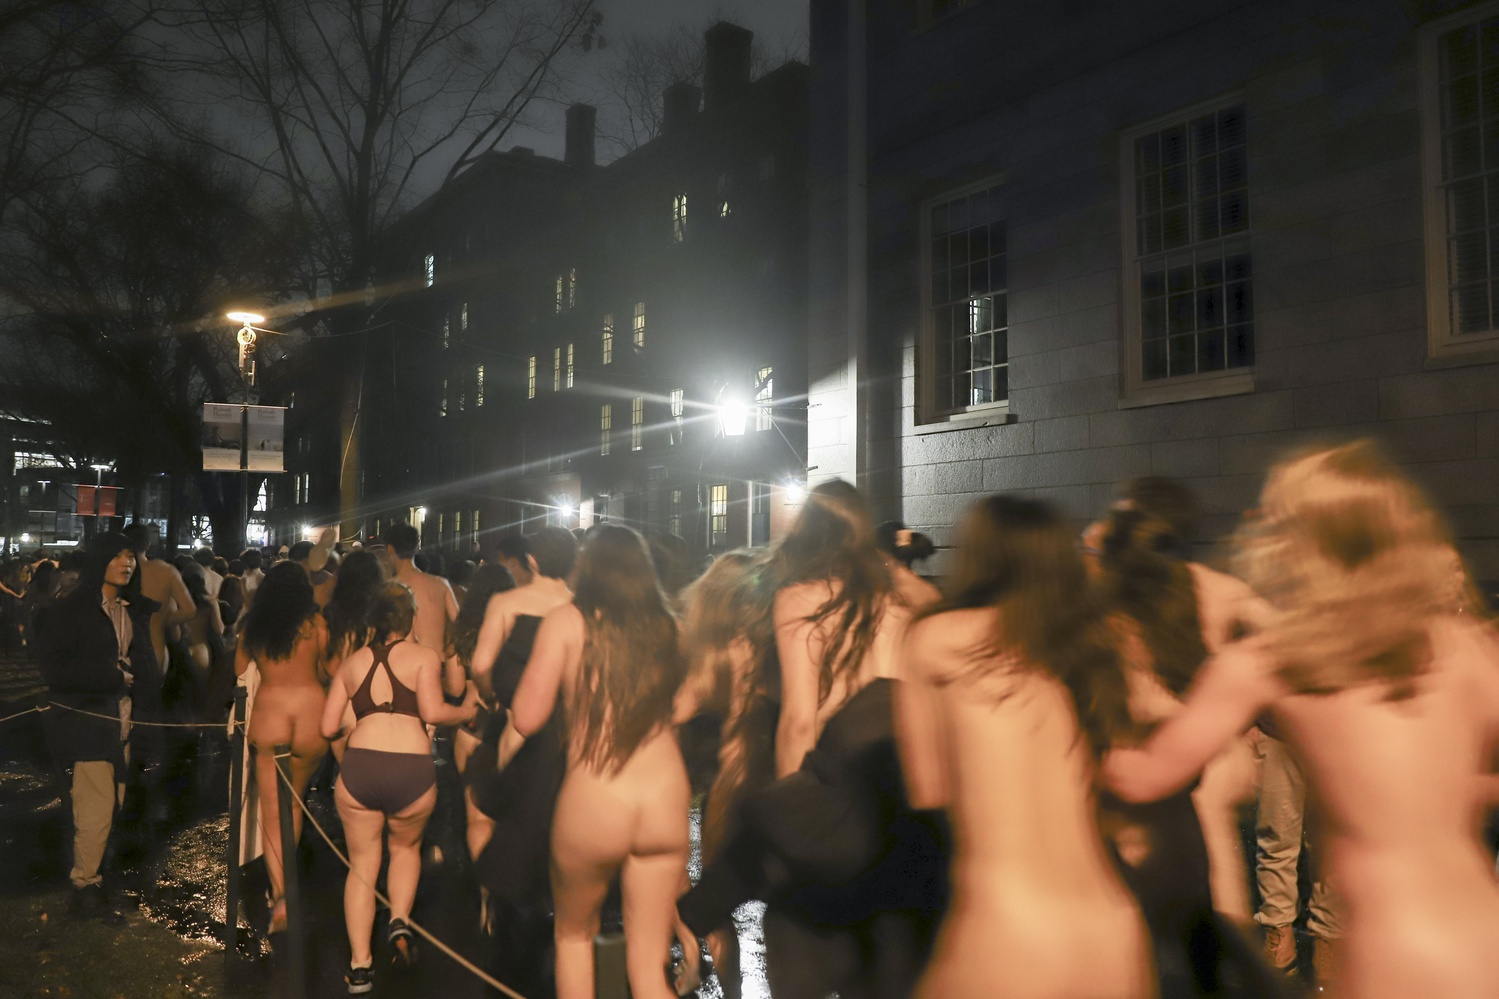 On rainy Monday night, a large number of students gathered in the Harvard Yard for Primal Scream, a biannual tradition where students run naked around the Yard before finals begin.